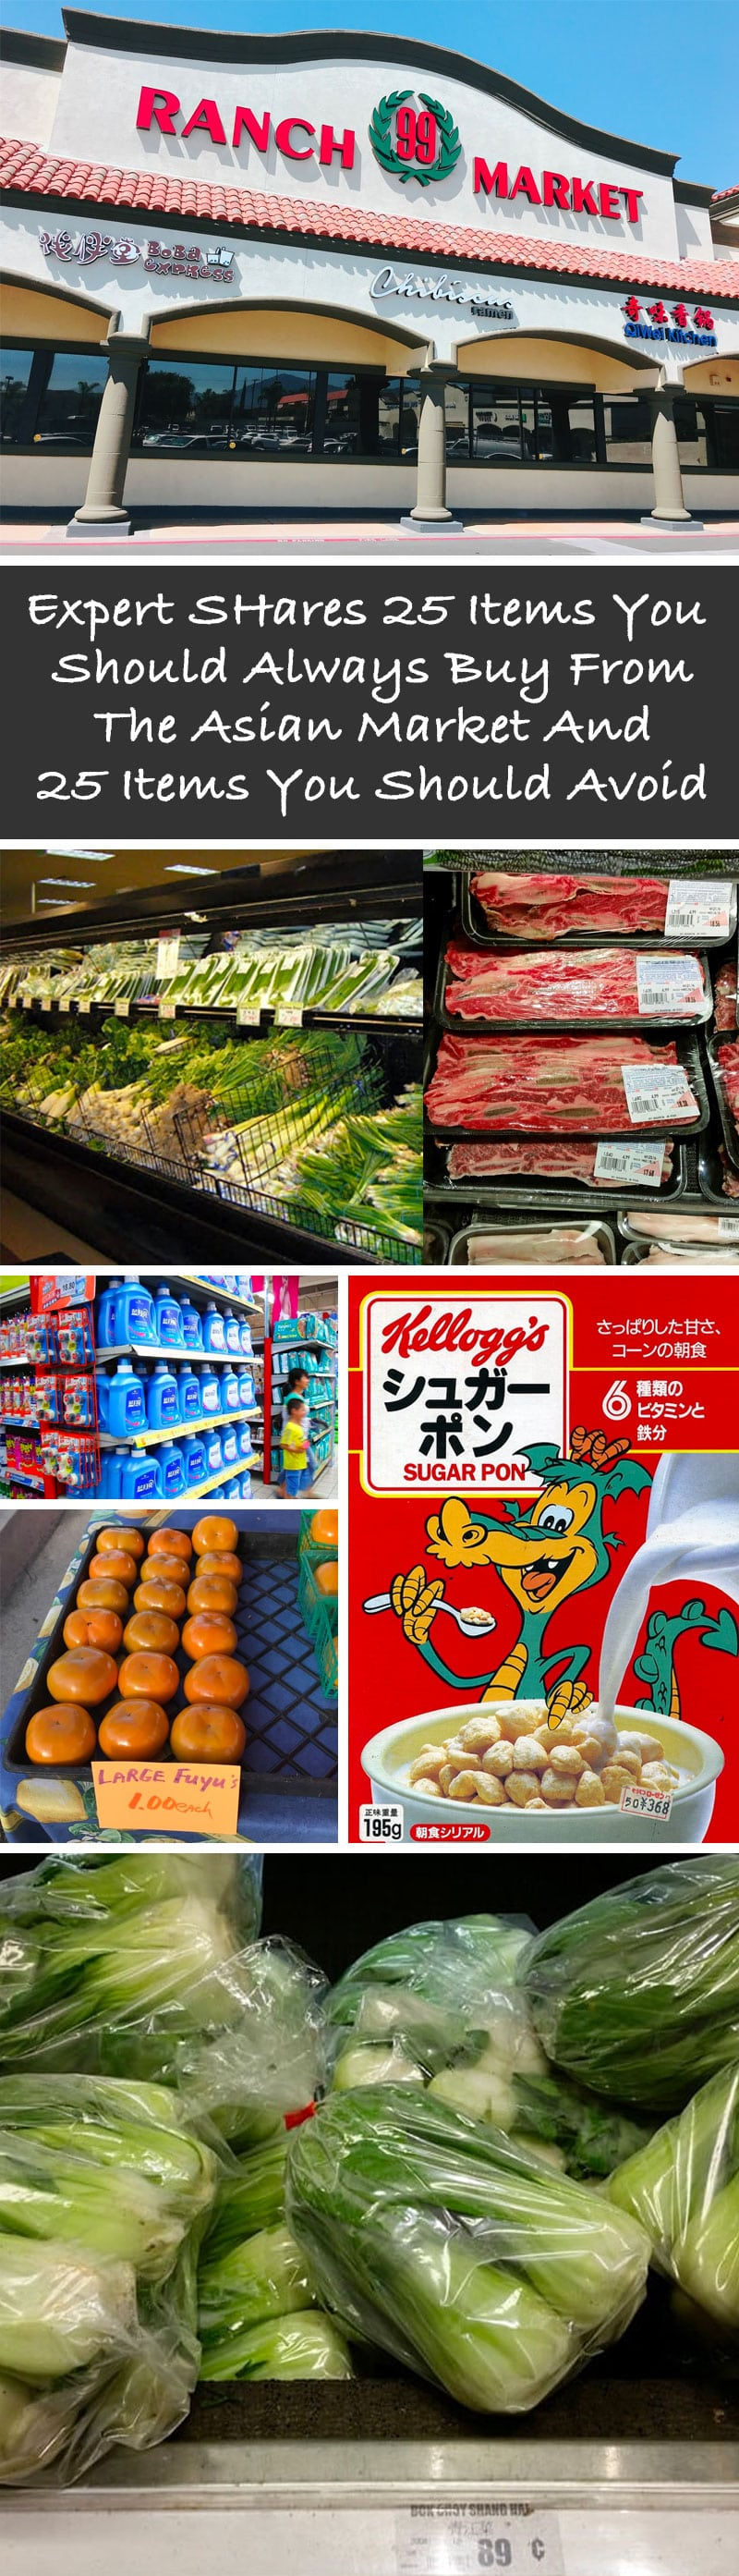 Here Are 25 Things To Buy At The Asian Supermarket (And 25